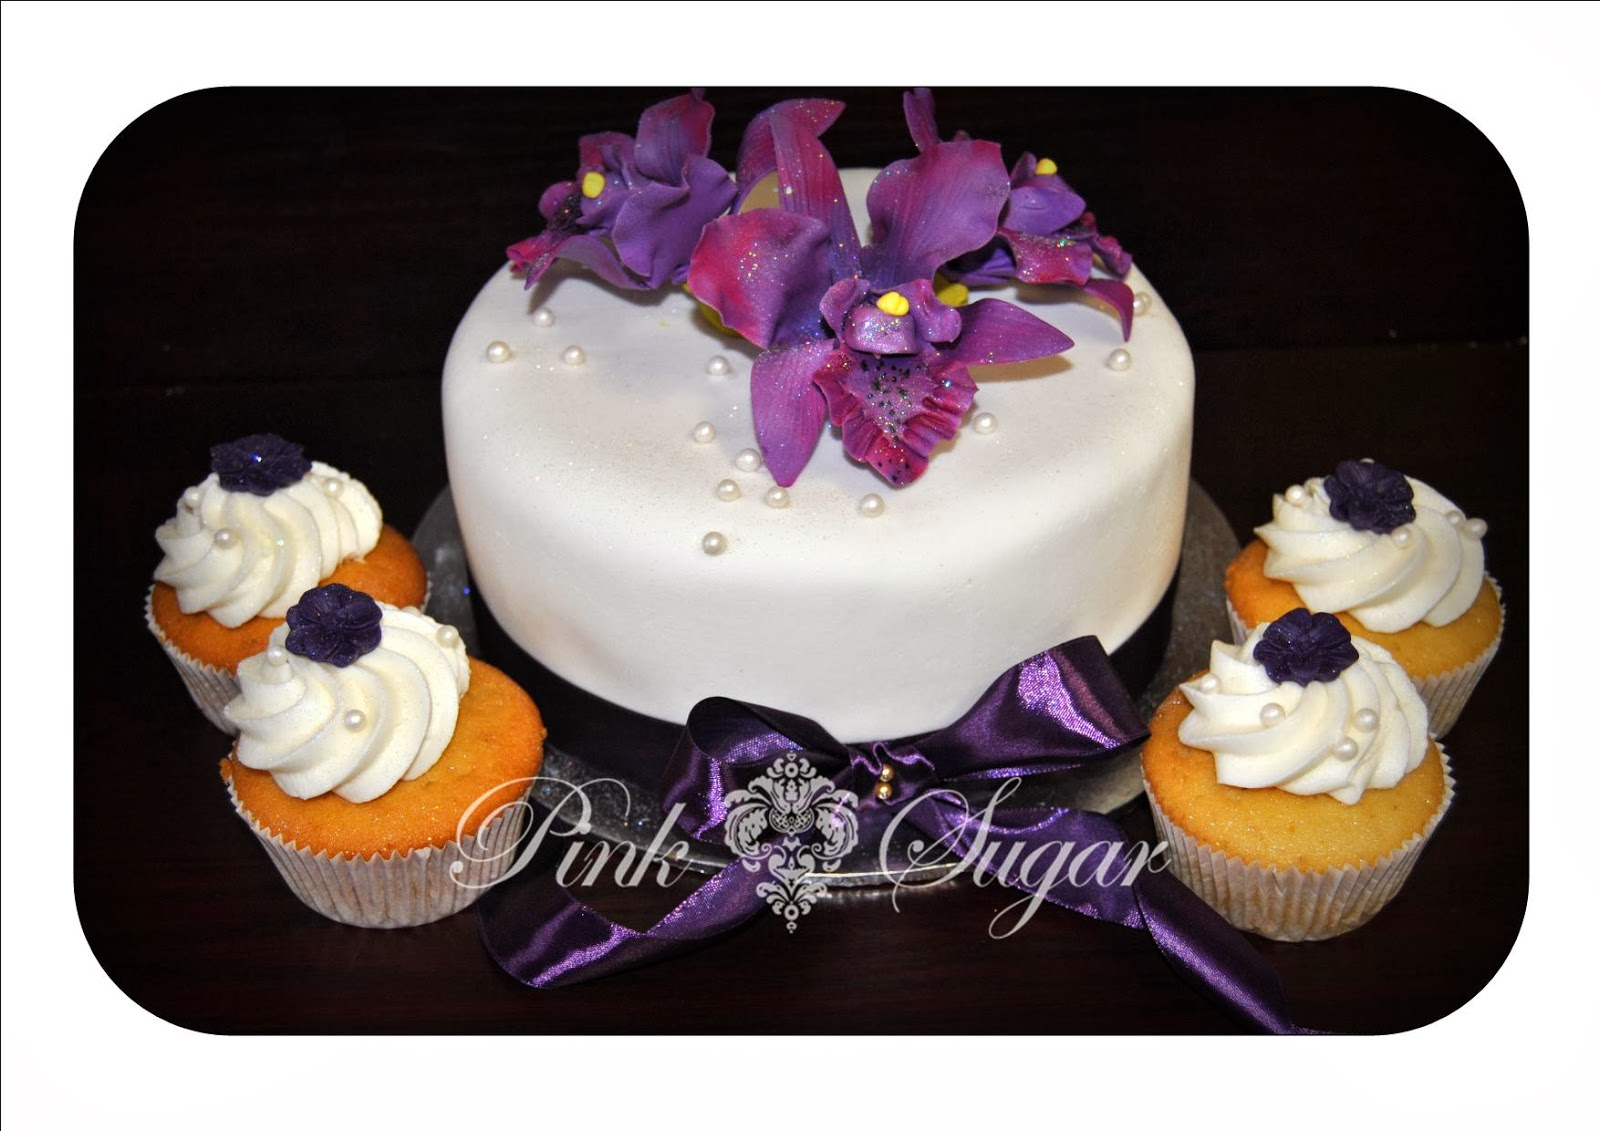 Pink Sugar Purple Orchid Wedding Cake & Cupcakes